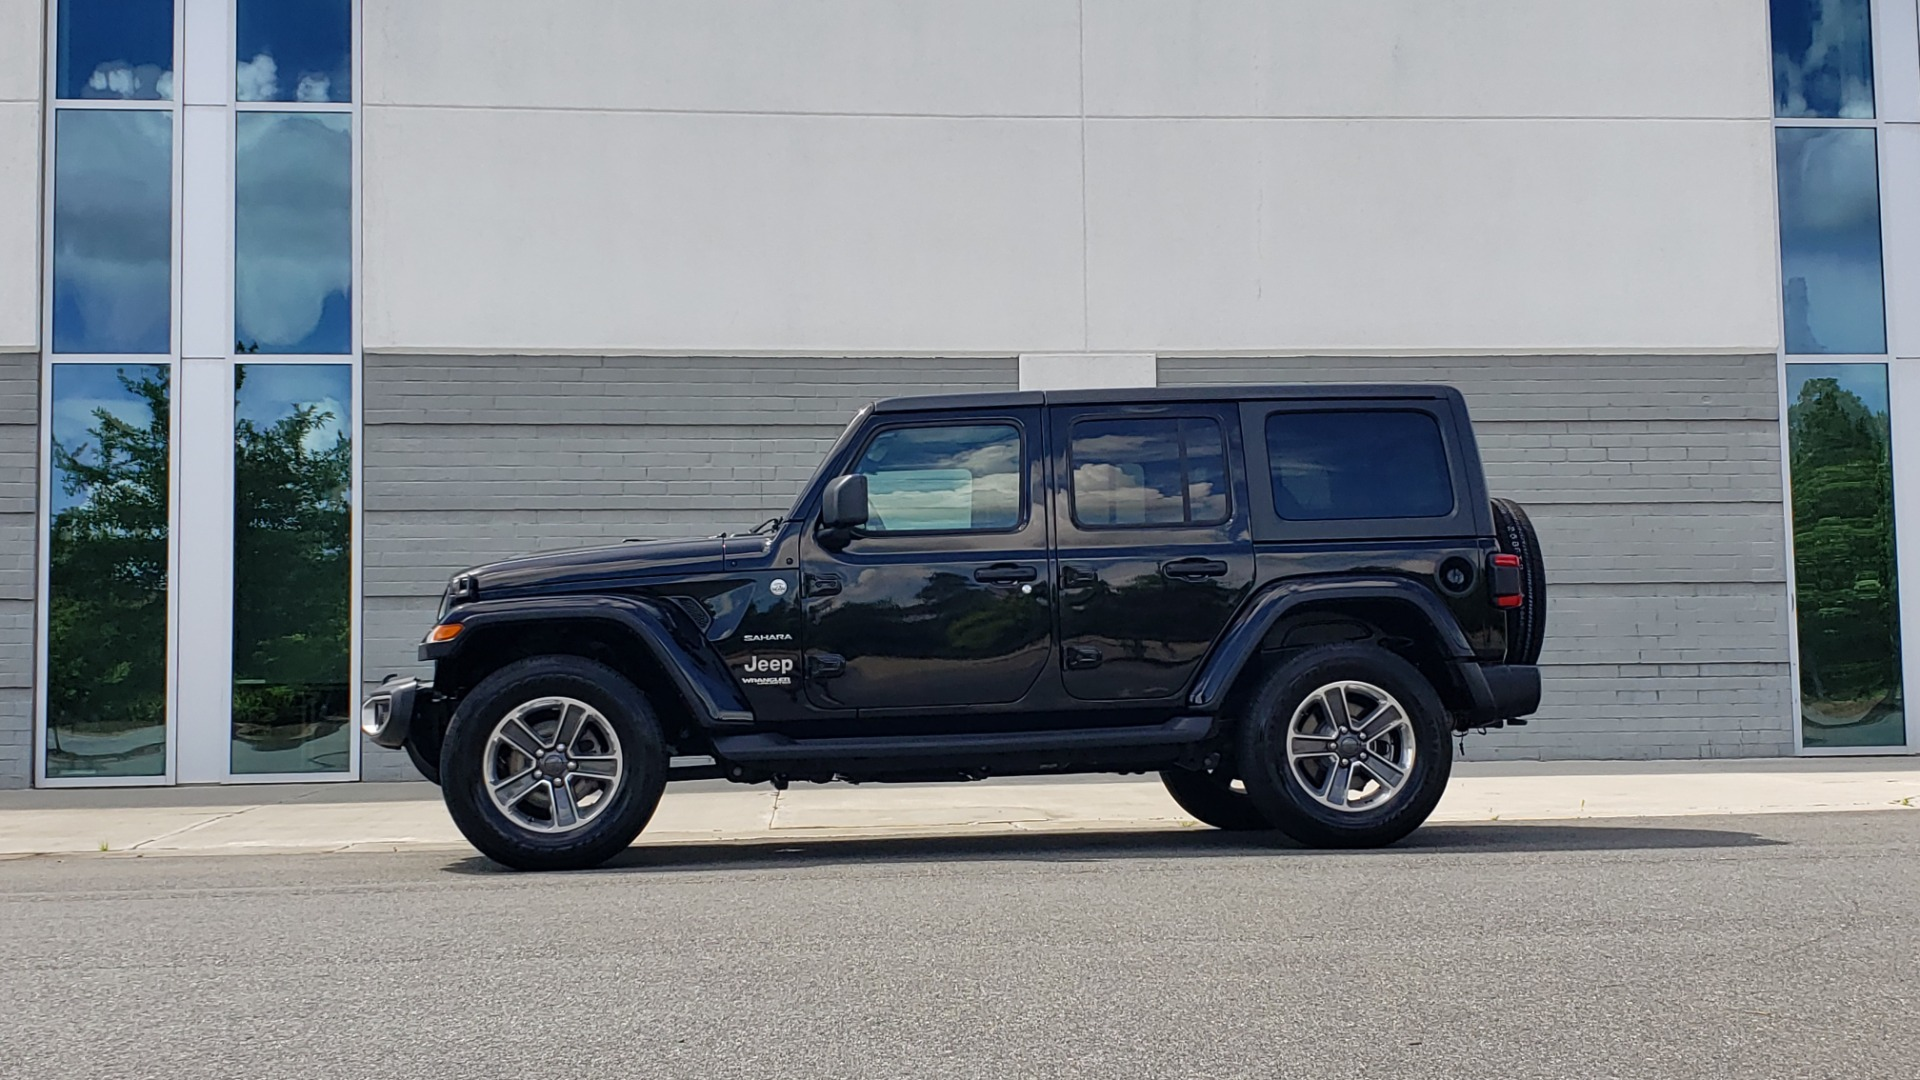 Used 2018 Jeep WRANGLER UNLIMITED SAHARA / 3.6L V6 / 6-SPD MAN / ALPINE / NAV / HTD STS / REARVIEW for sale $43,999 at Formula Imports in Charlotte NC 28227 5